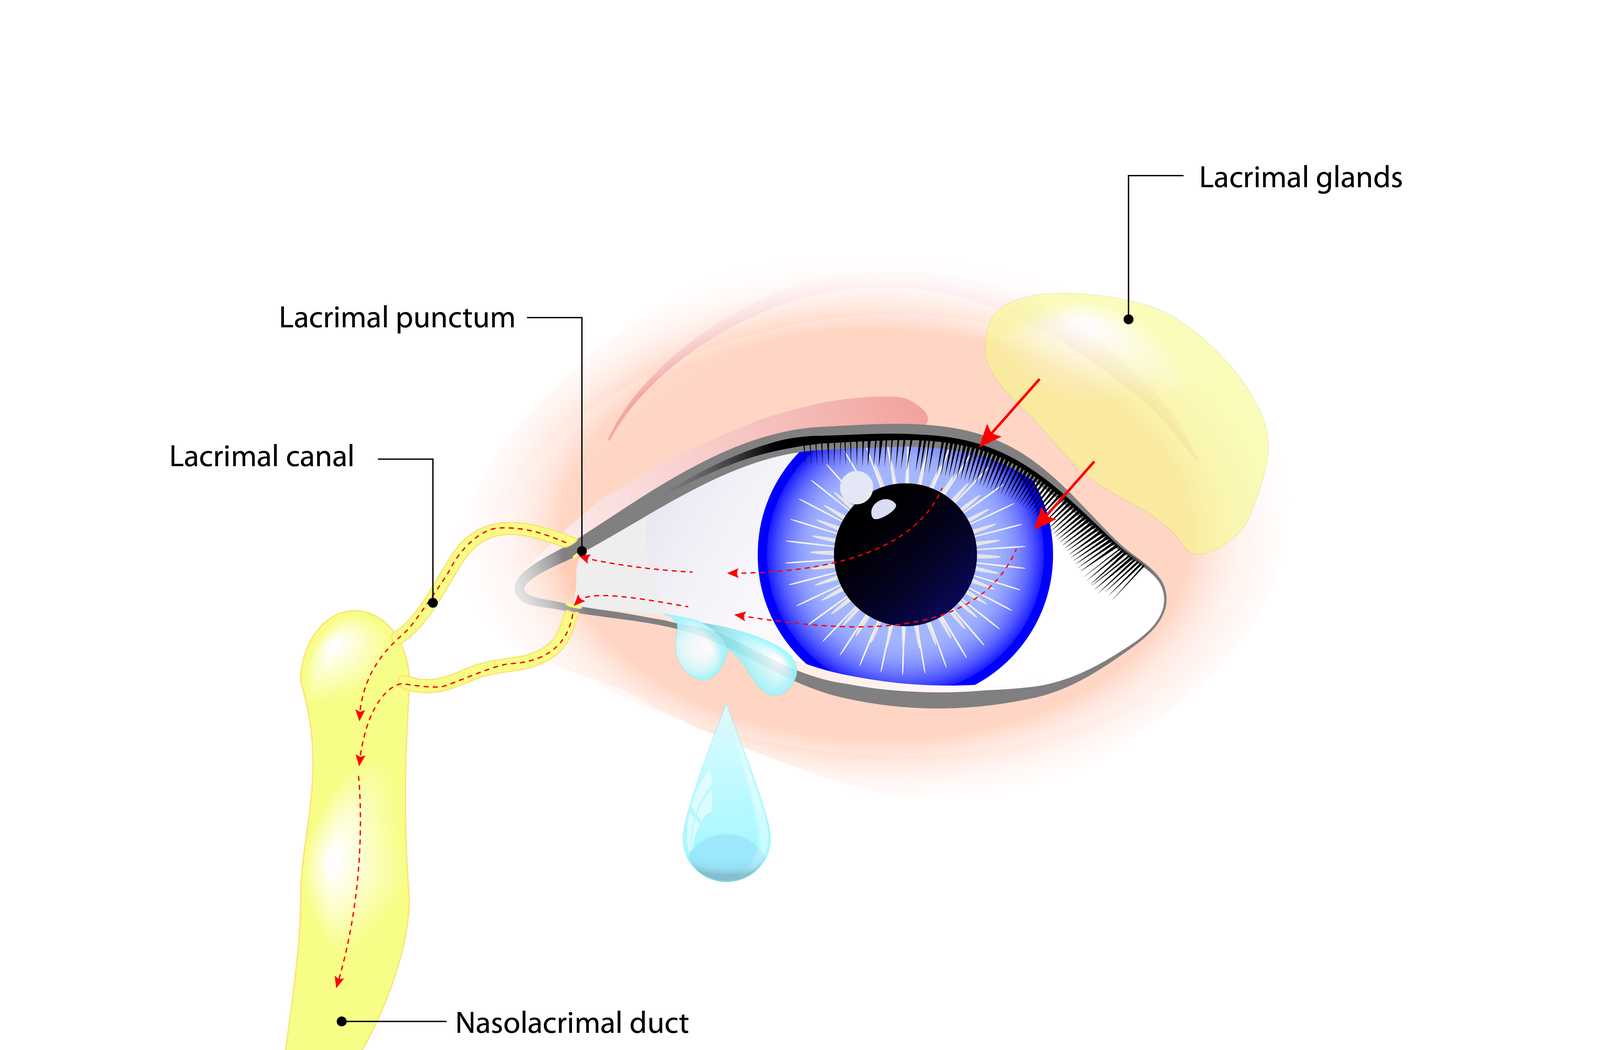 labeled diagram of an eye with a purple iris, including the lacrimal glands leading to puncta, canaliculi, and the tear duct